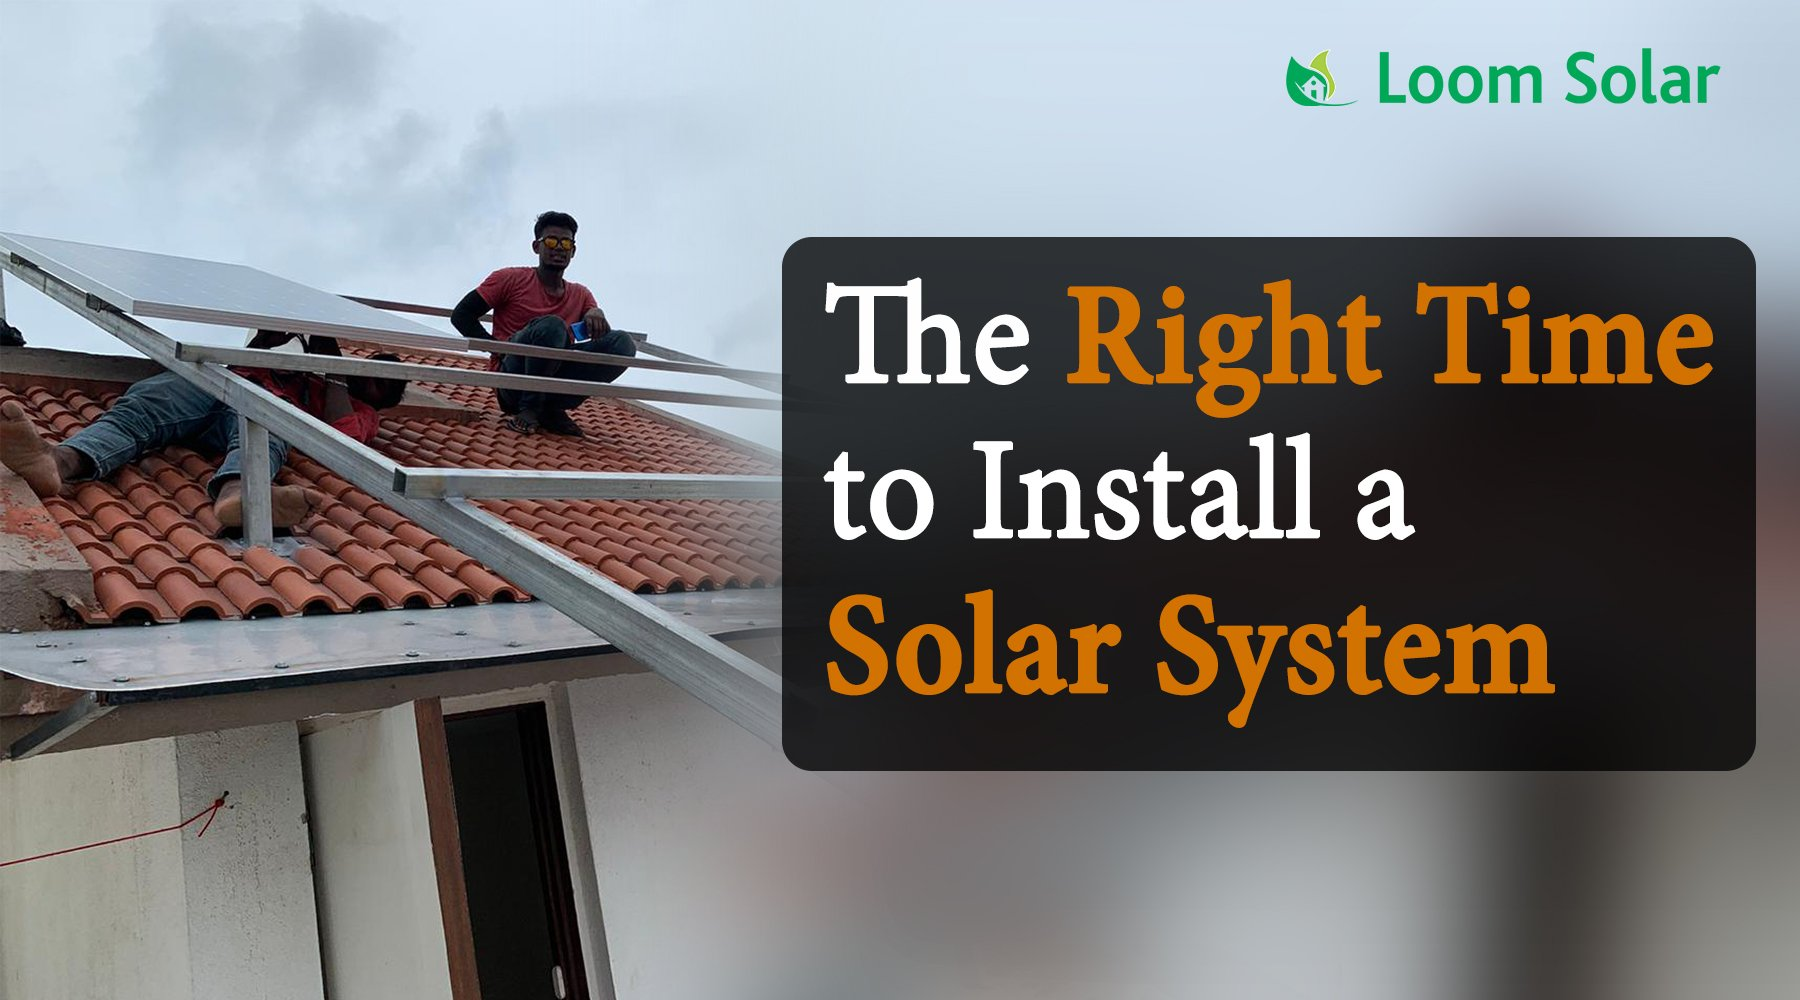 Which is the Right Time to Install a Solar System?